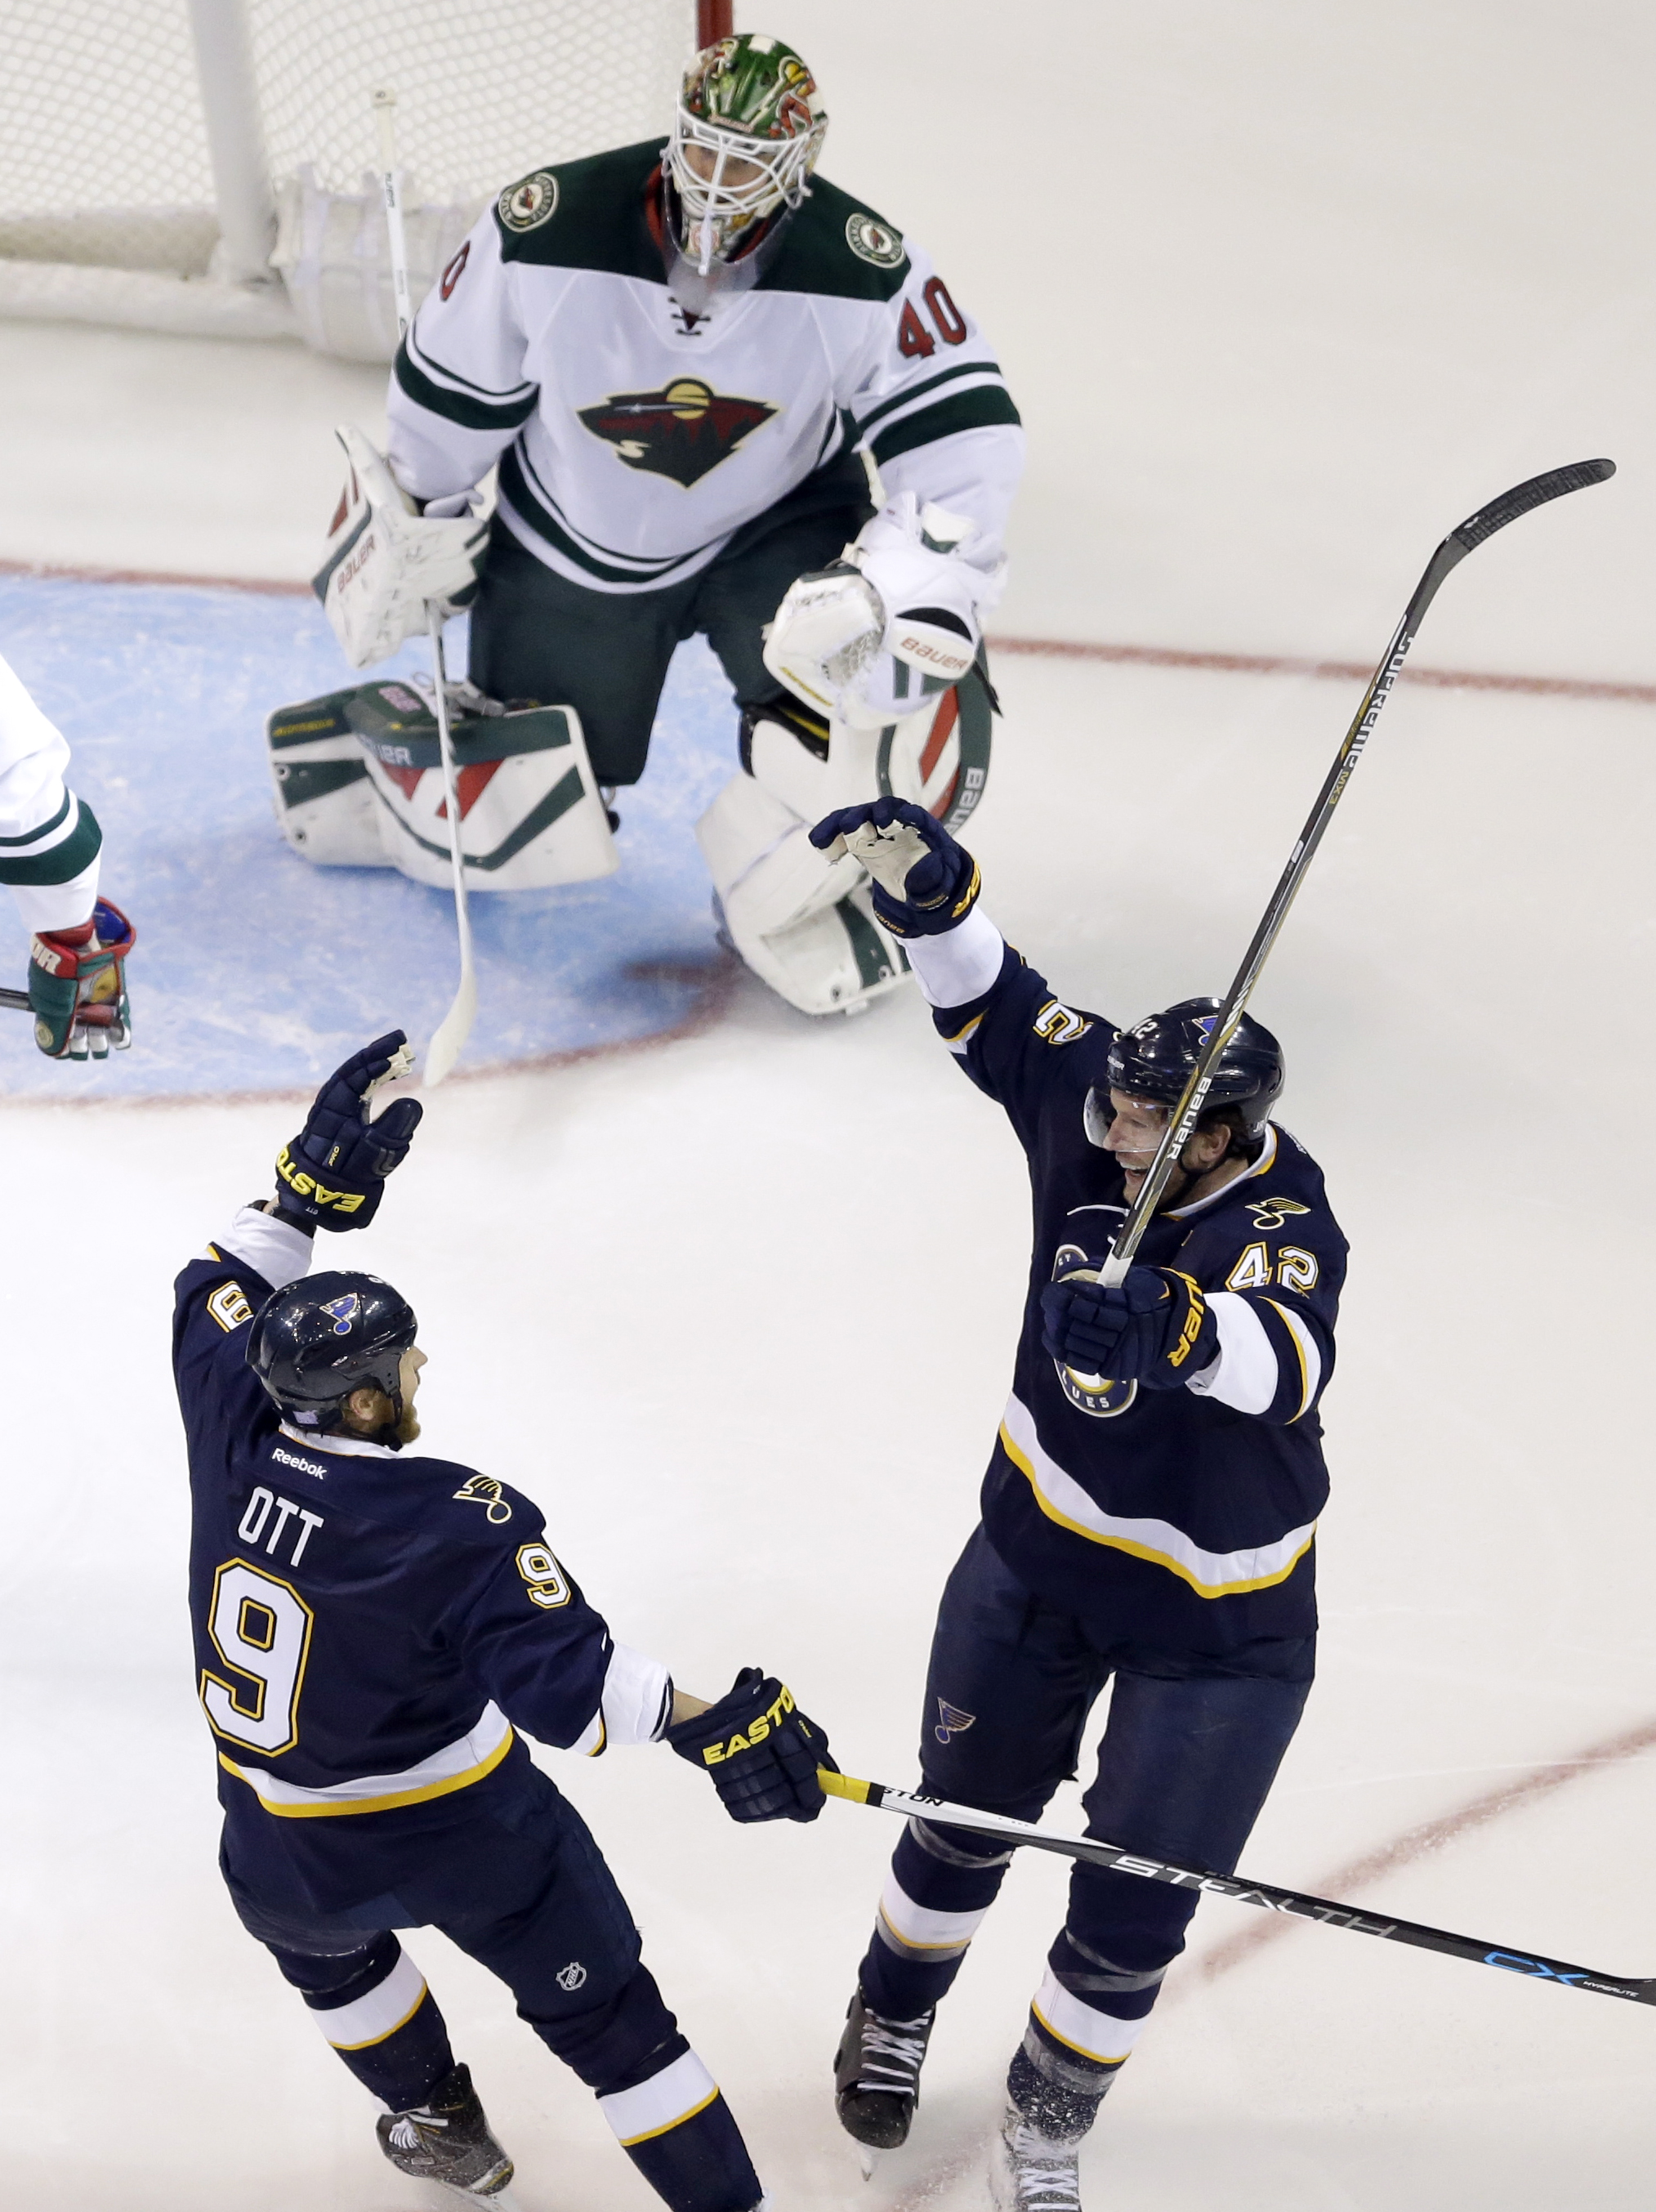 St. Louis Blues' David Backes, bottom right, is congratulated by teammate Steve Ott after scoring past Minnesota Wild goalie Devan Dubnyk, top, during the first period of an NHL hockey game Saturday, Oct. 31, 2015, in St. Louis. (AP Photo/Jeff Roberson)